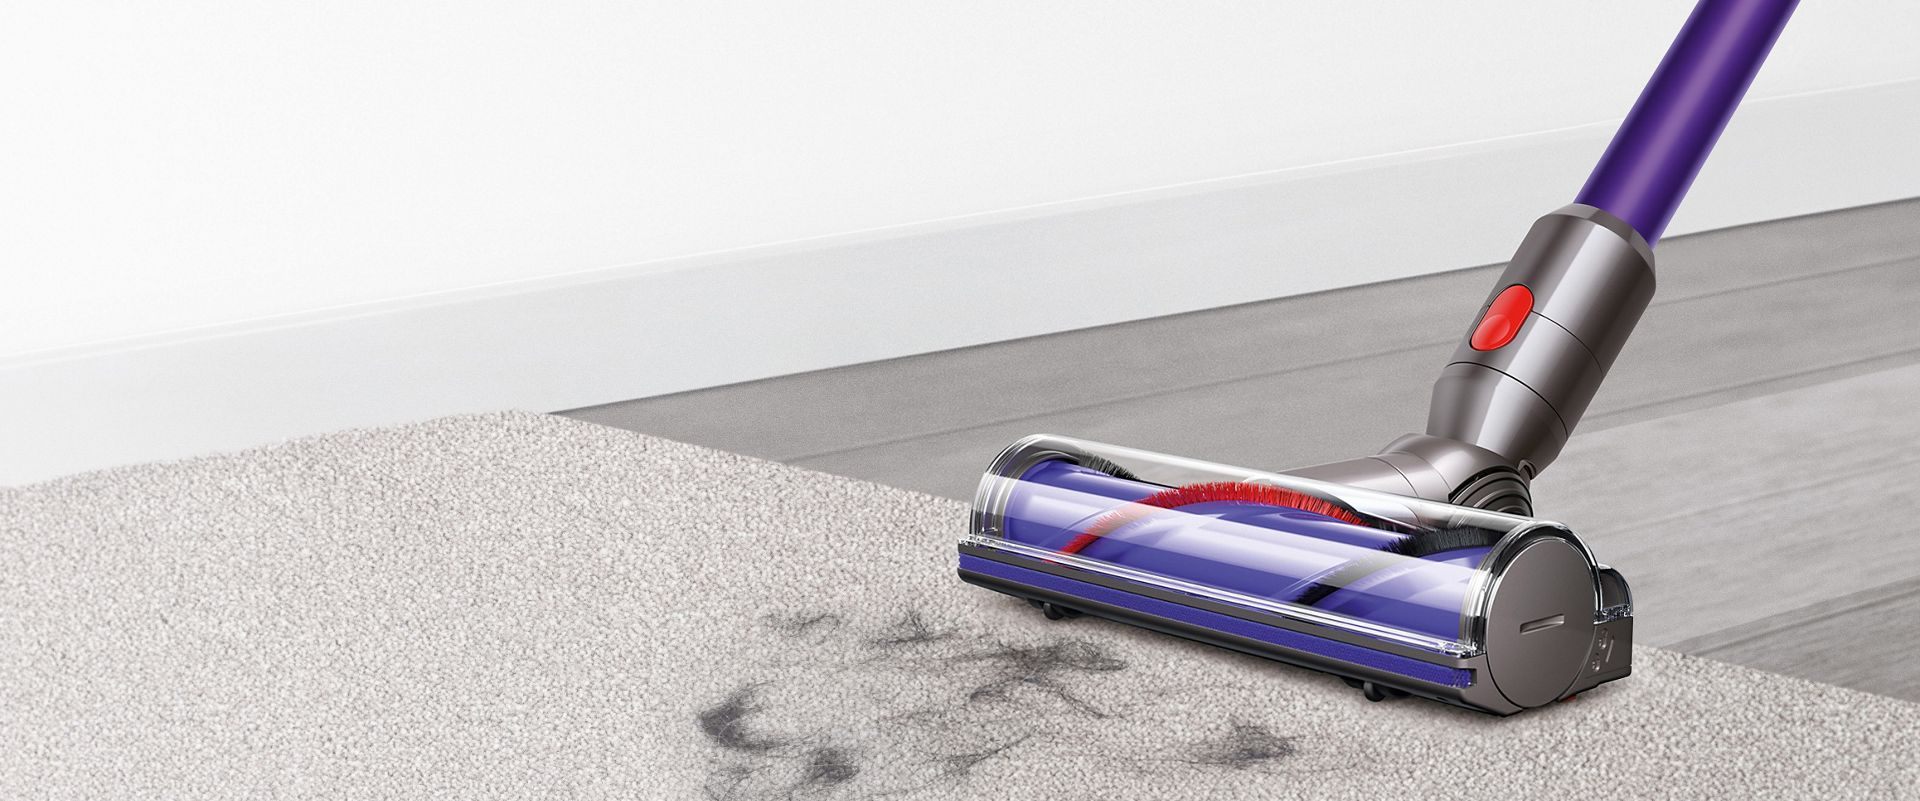 Dyson V7 Animal Best Cordless Vacuum for Pet Hair in 2018